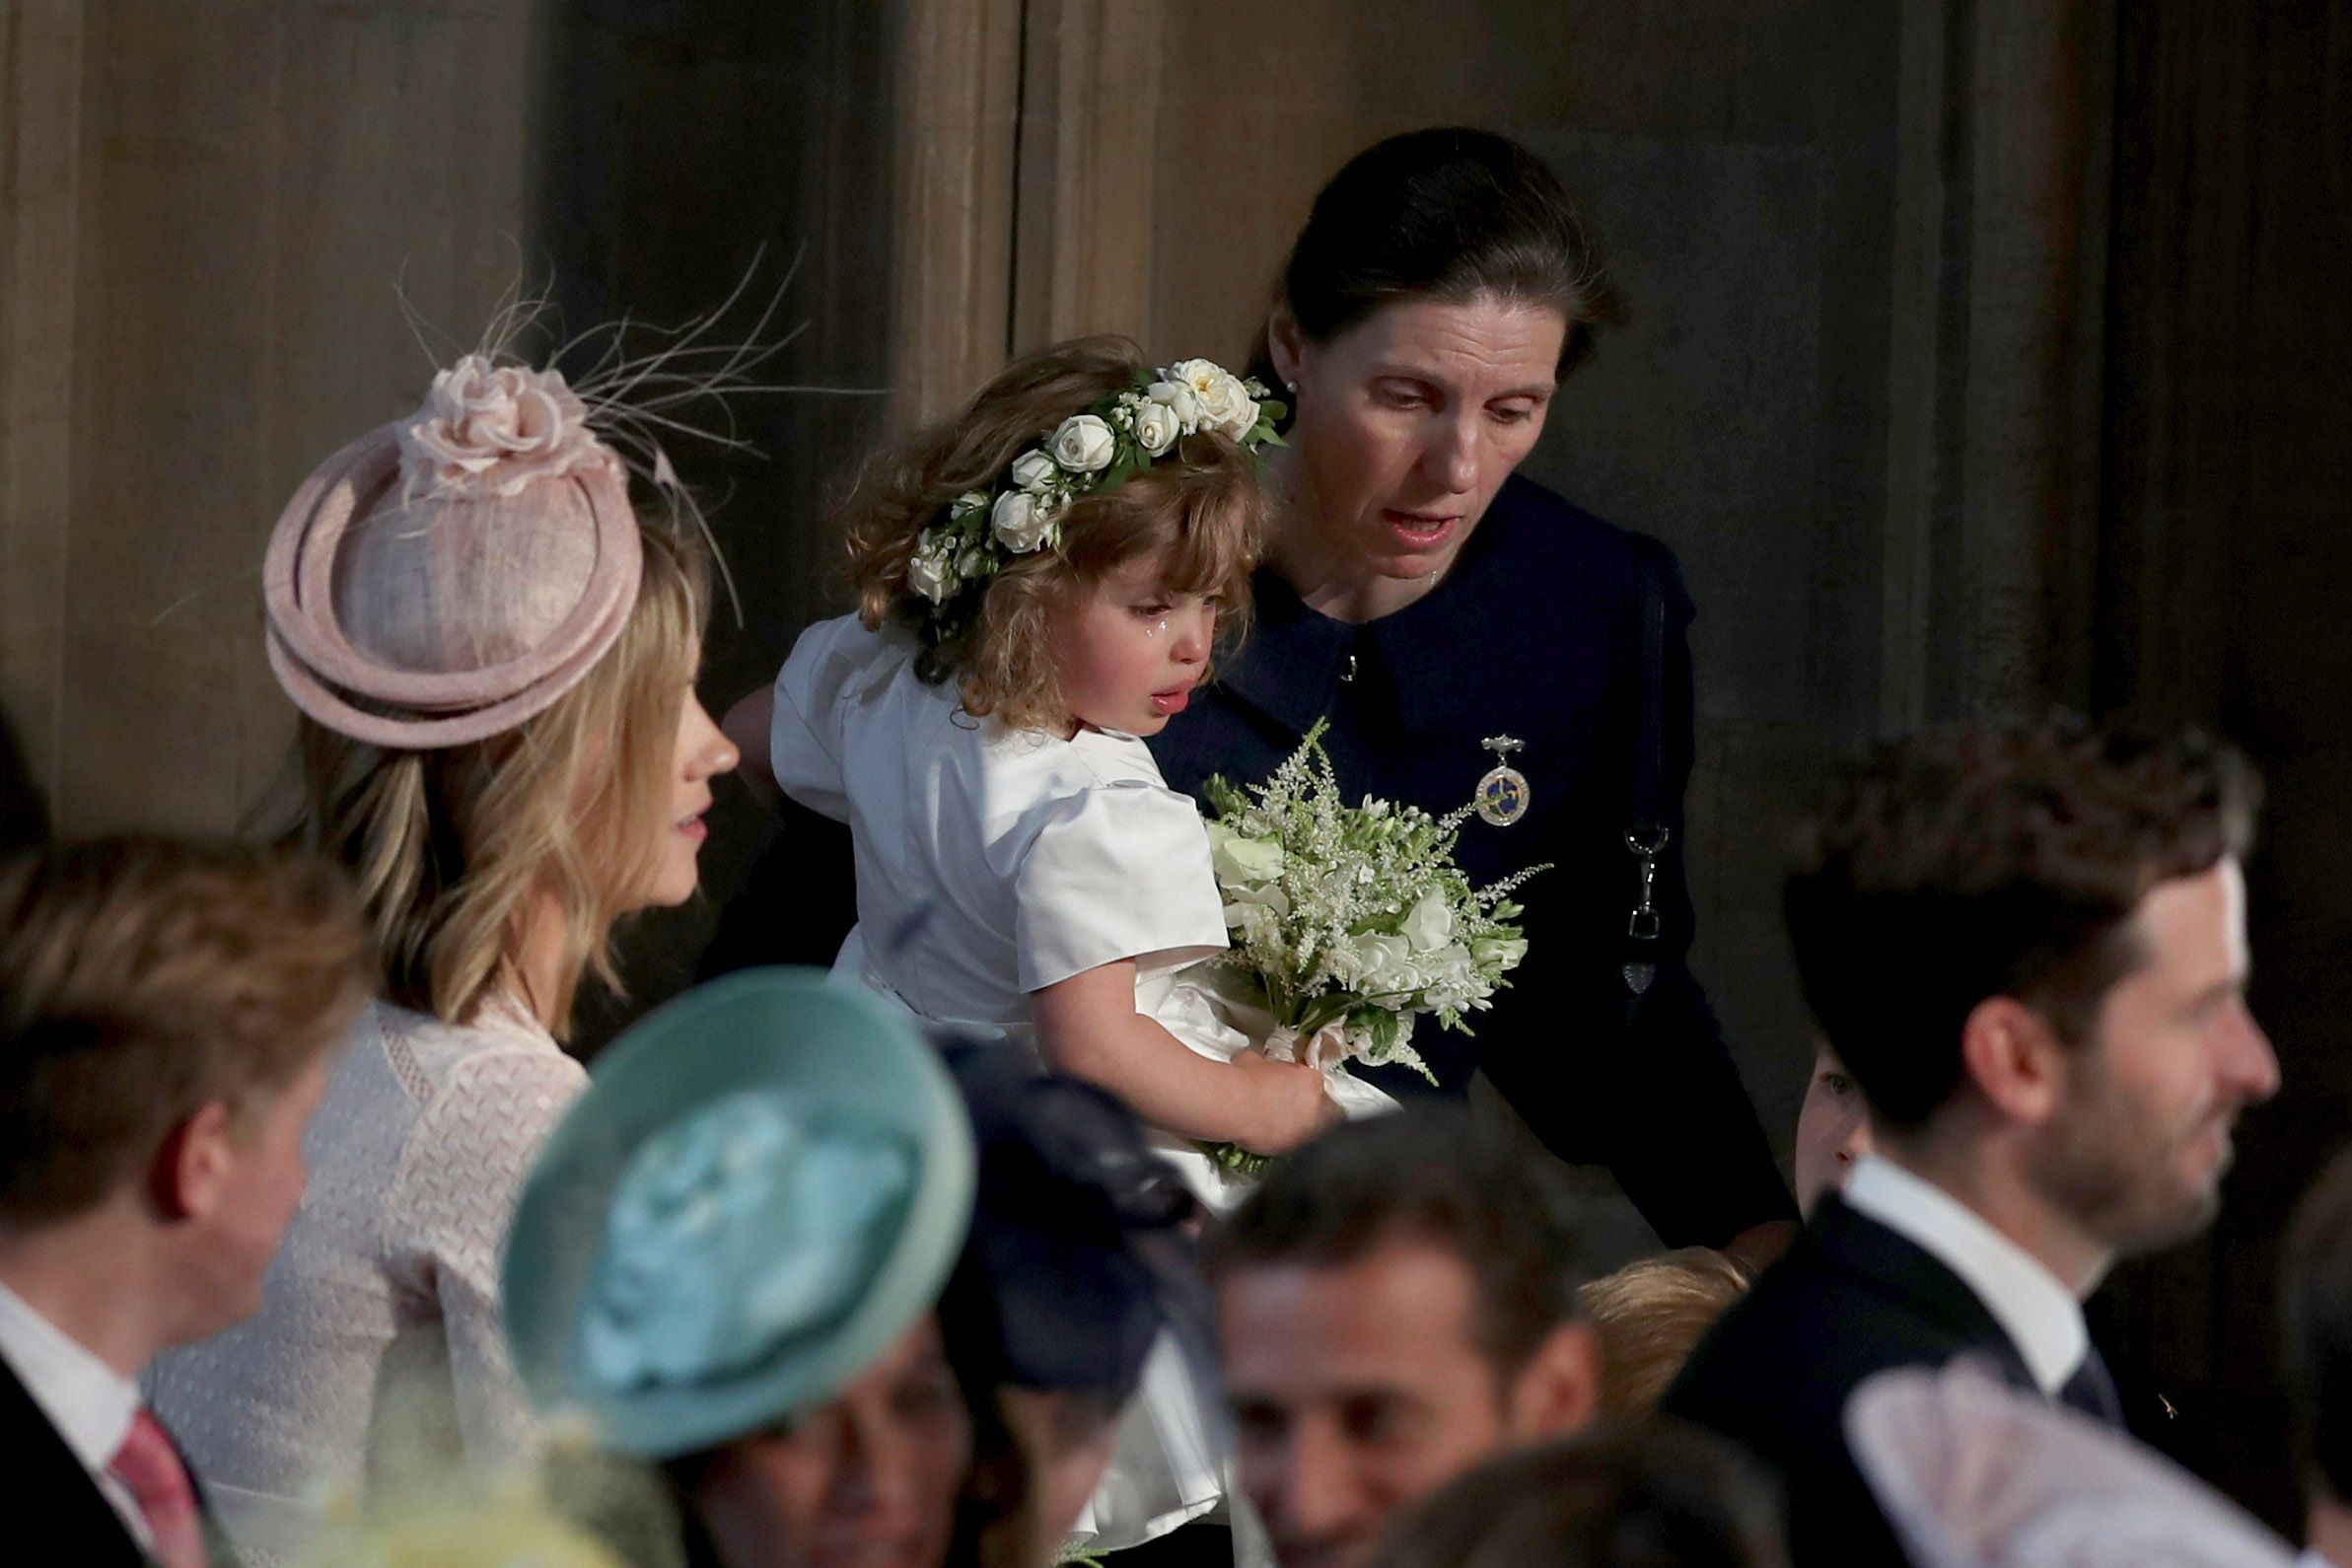 The royal wedding featured plenty of happy tears as guests celebrated the beautiful ceremony, but there was at least one member of the wedding party who was weeping for another reason. One of the young bridesmaids , possibly the youngest of the group, two-year-old Zalie Warren, found the spectacle a little overwhelming and had to be cared for by the royal nanny, Maria Teresa Turrion Borrallo , during the ceremony.